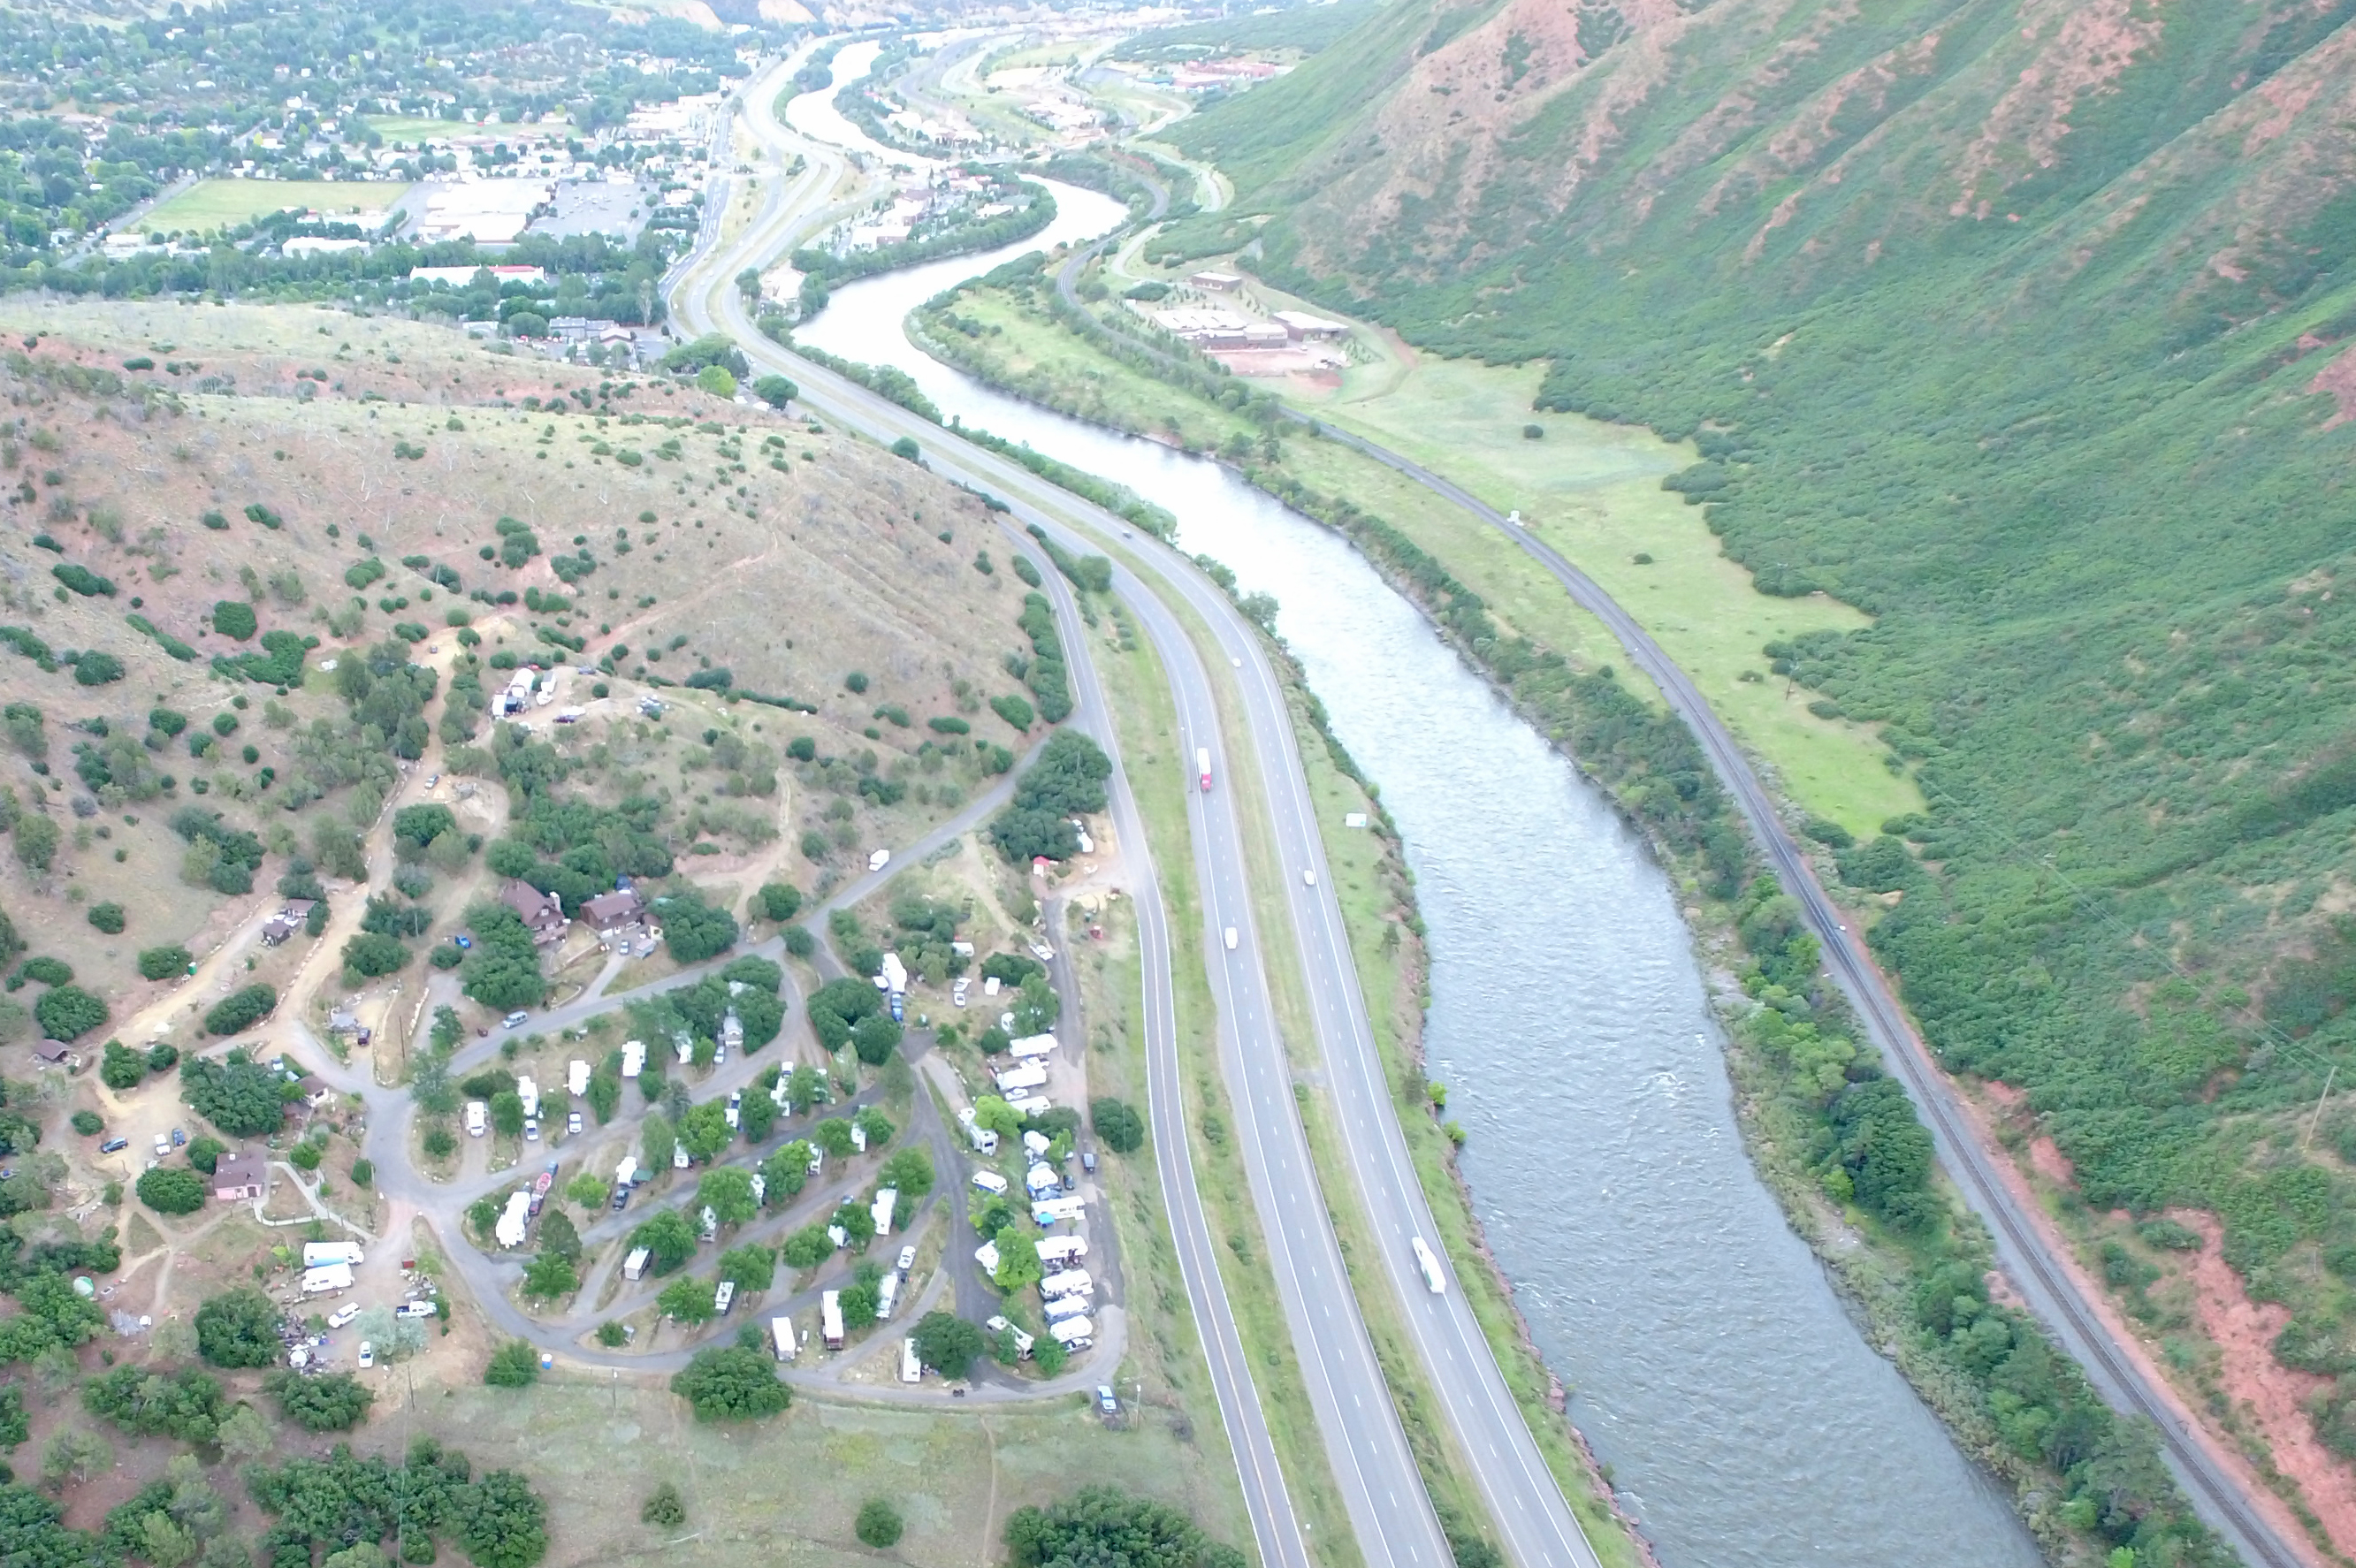 Aerial View Of Amis Acres Campground Near Glenwood Springs Colorado